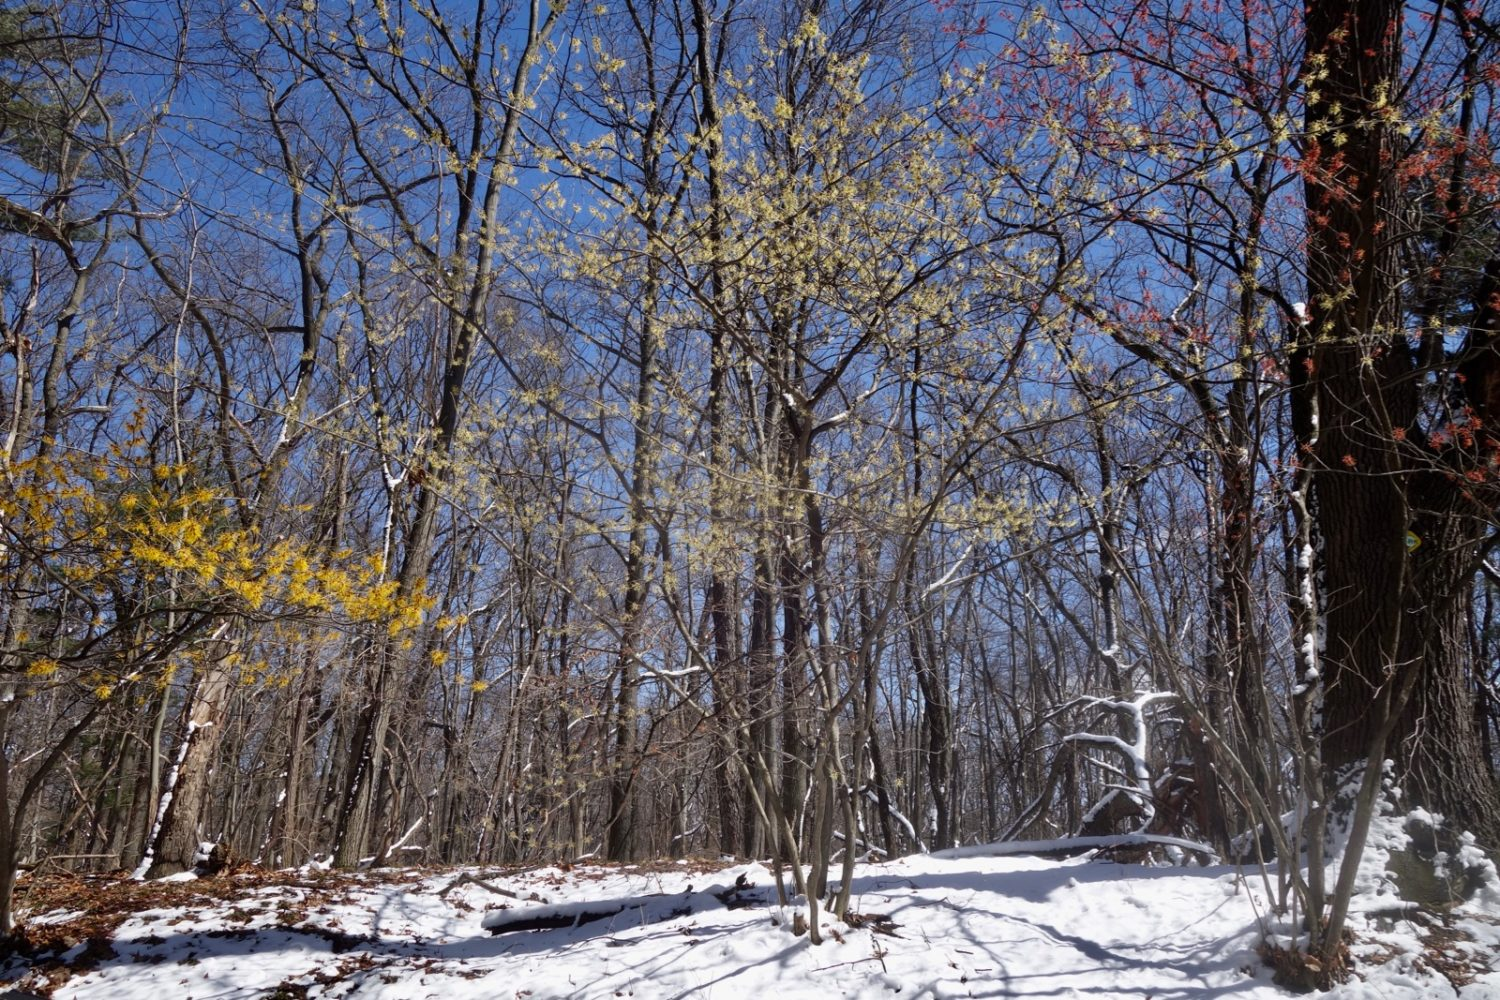 Three varieties of witch hazel on Wisner near the entrance to Durand Eastman Park